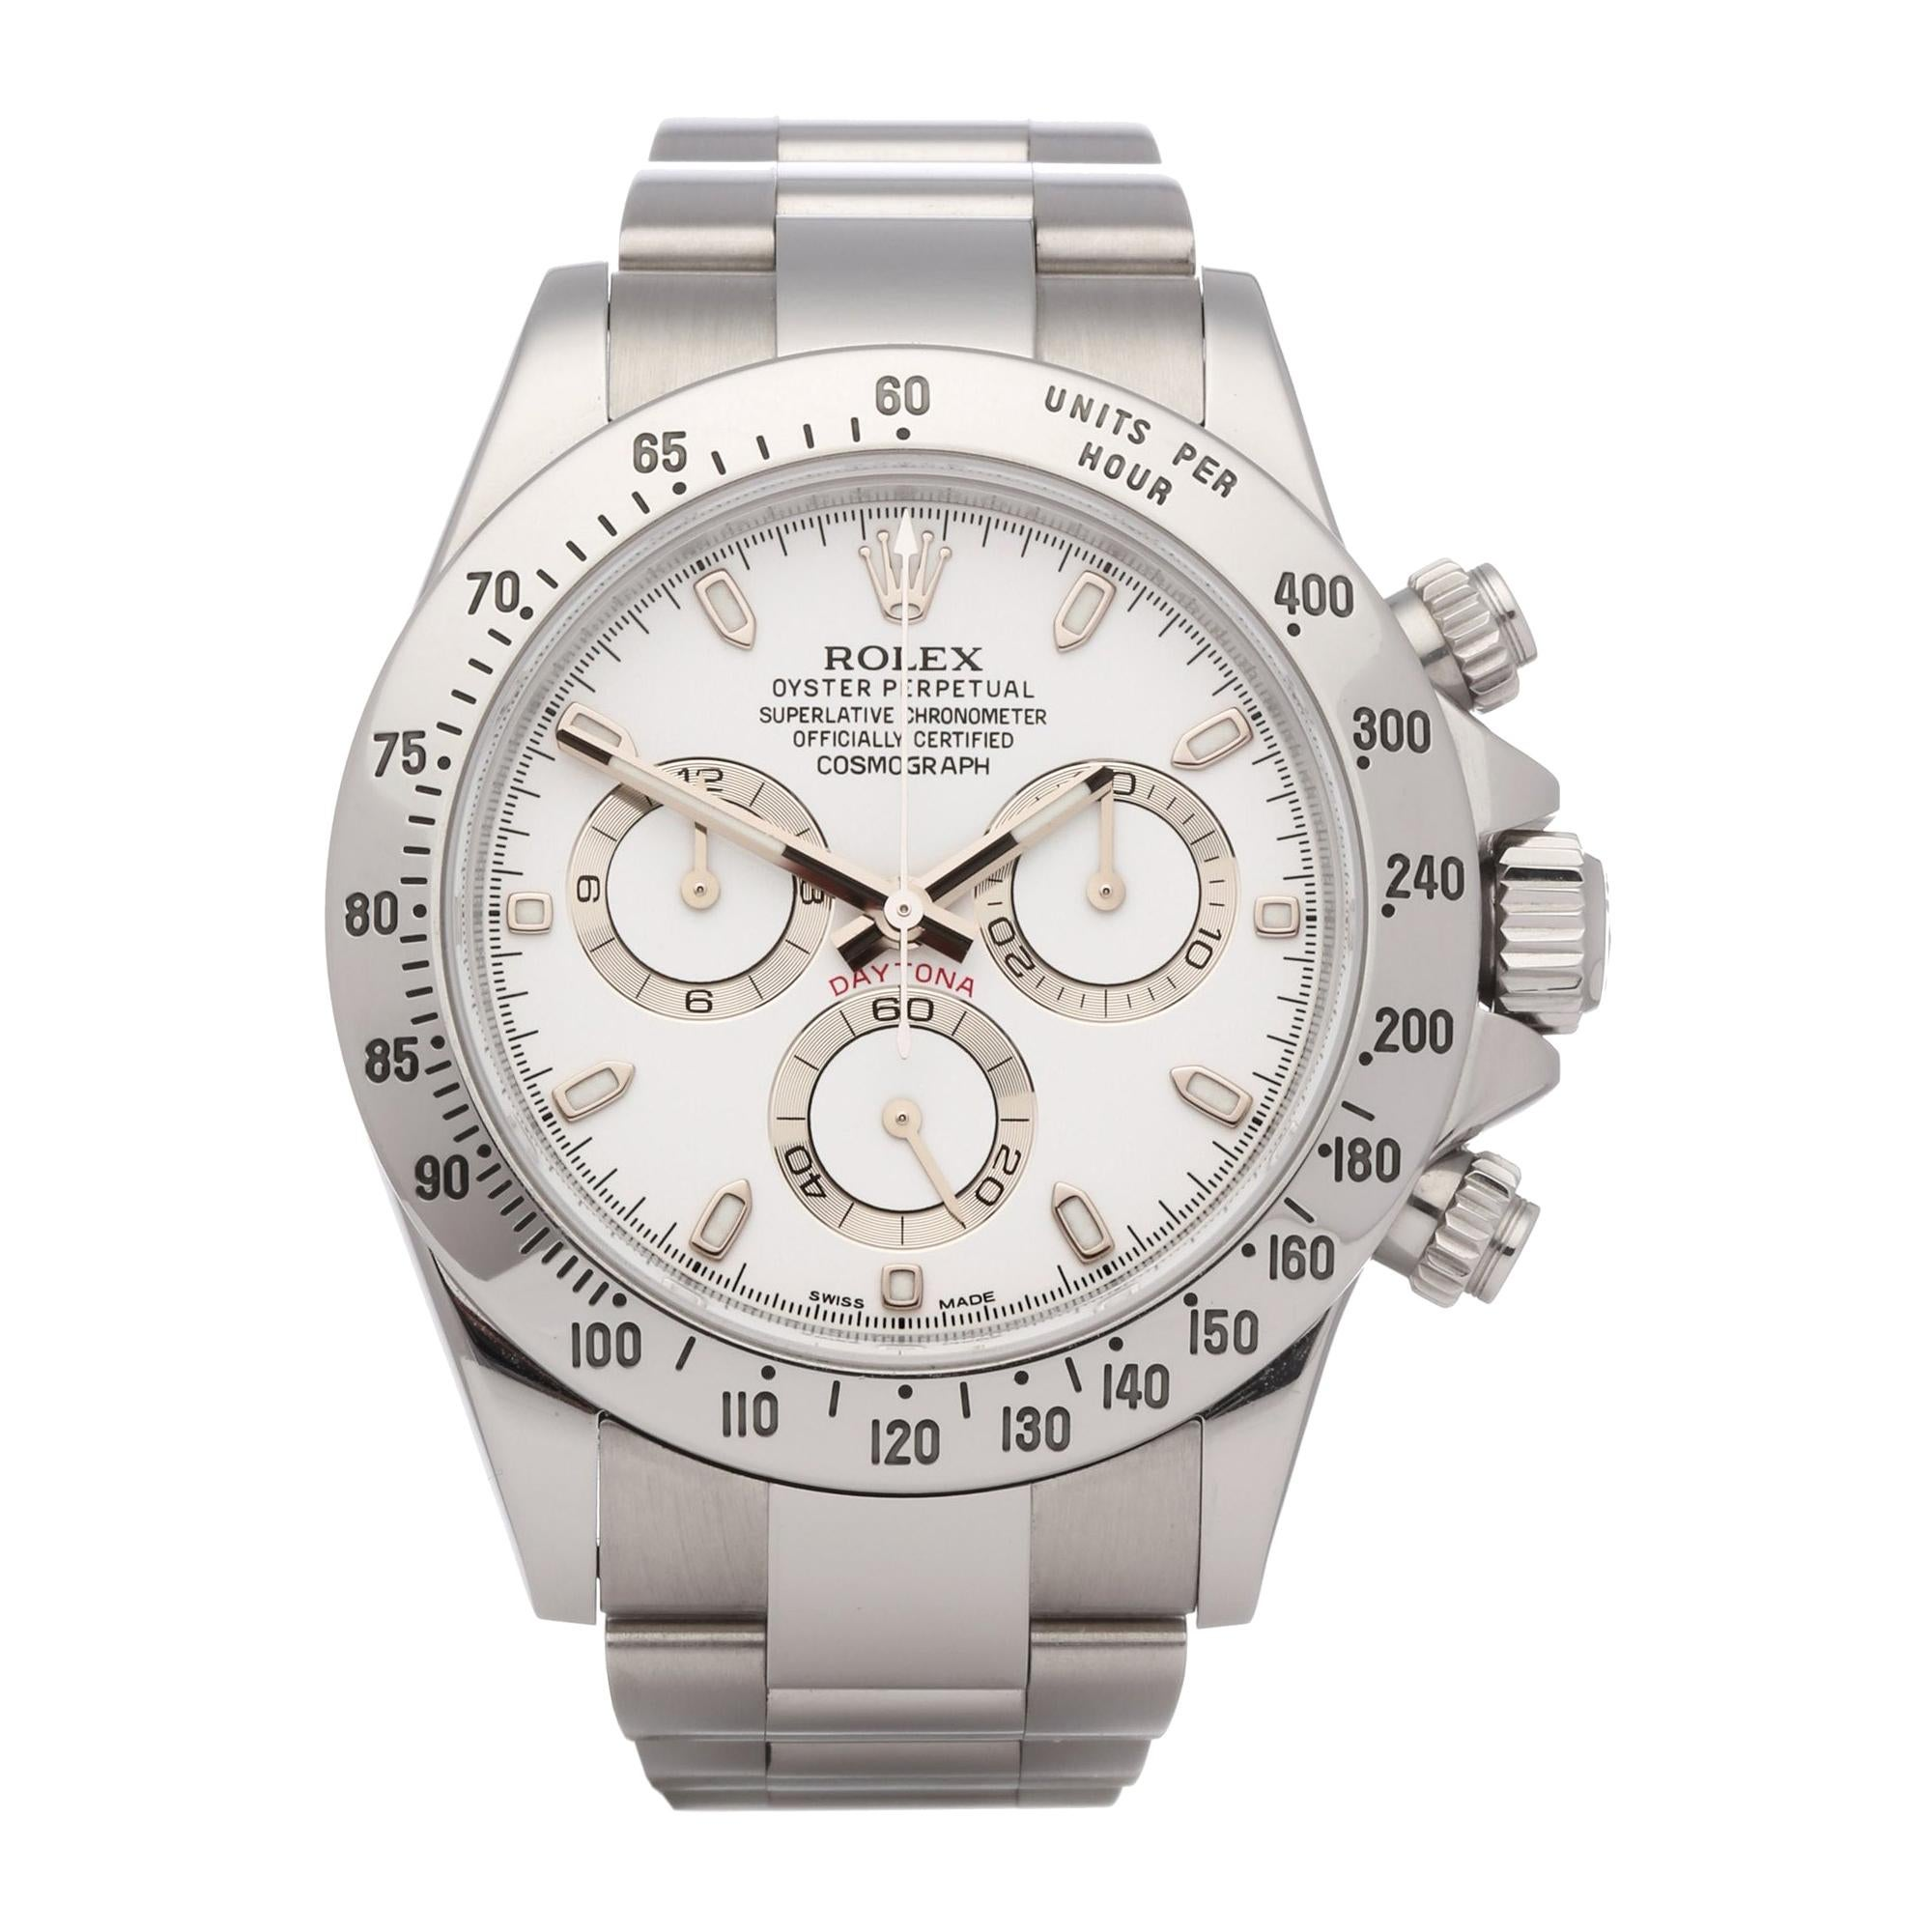 Rolex Daytona 116520 Men's Stainless Steel Cosmograph APH Dial Watch